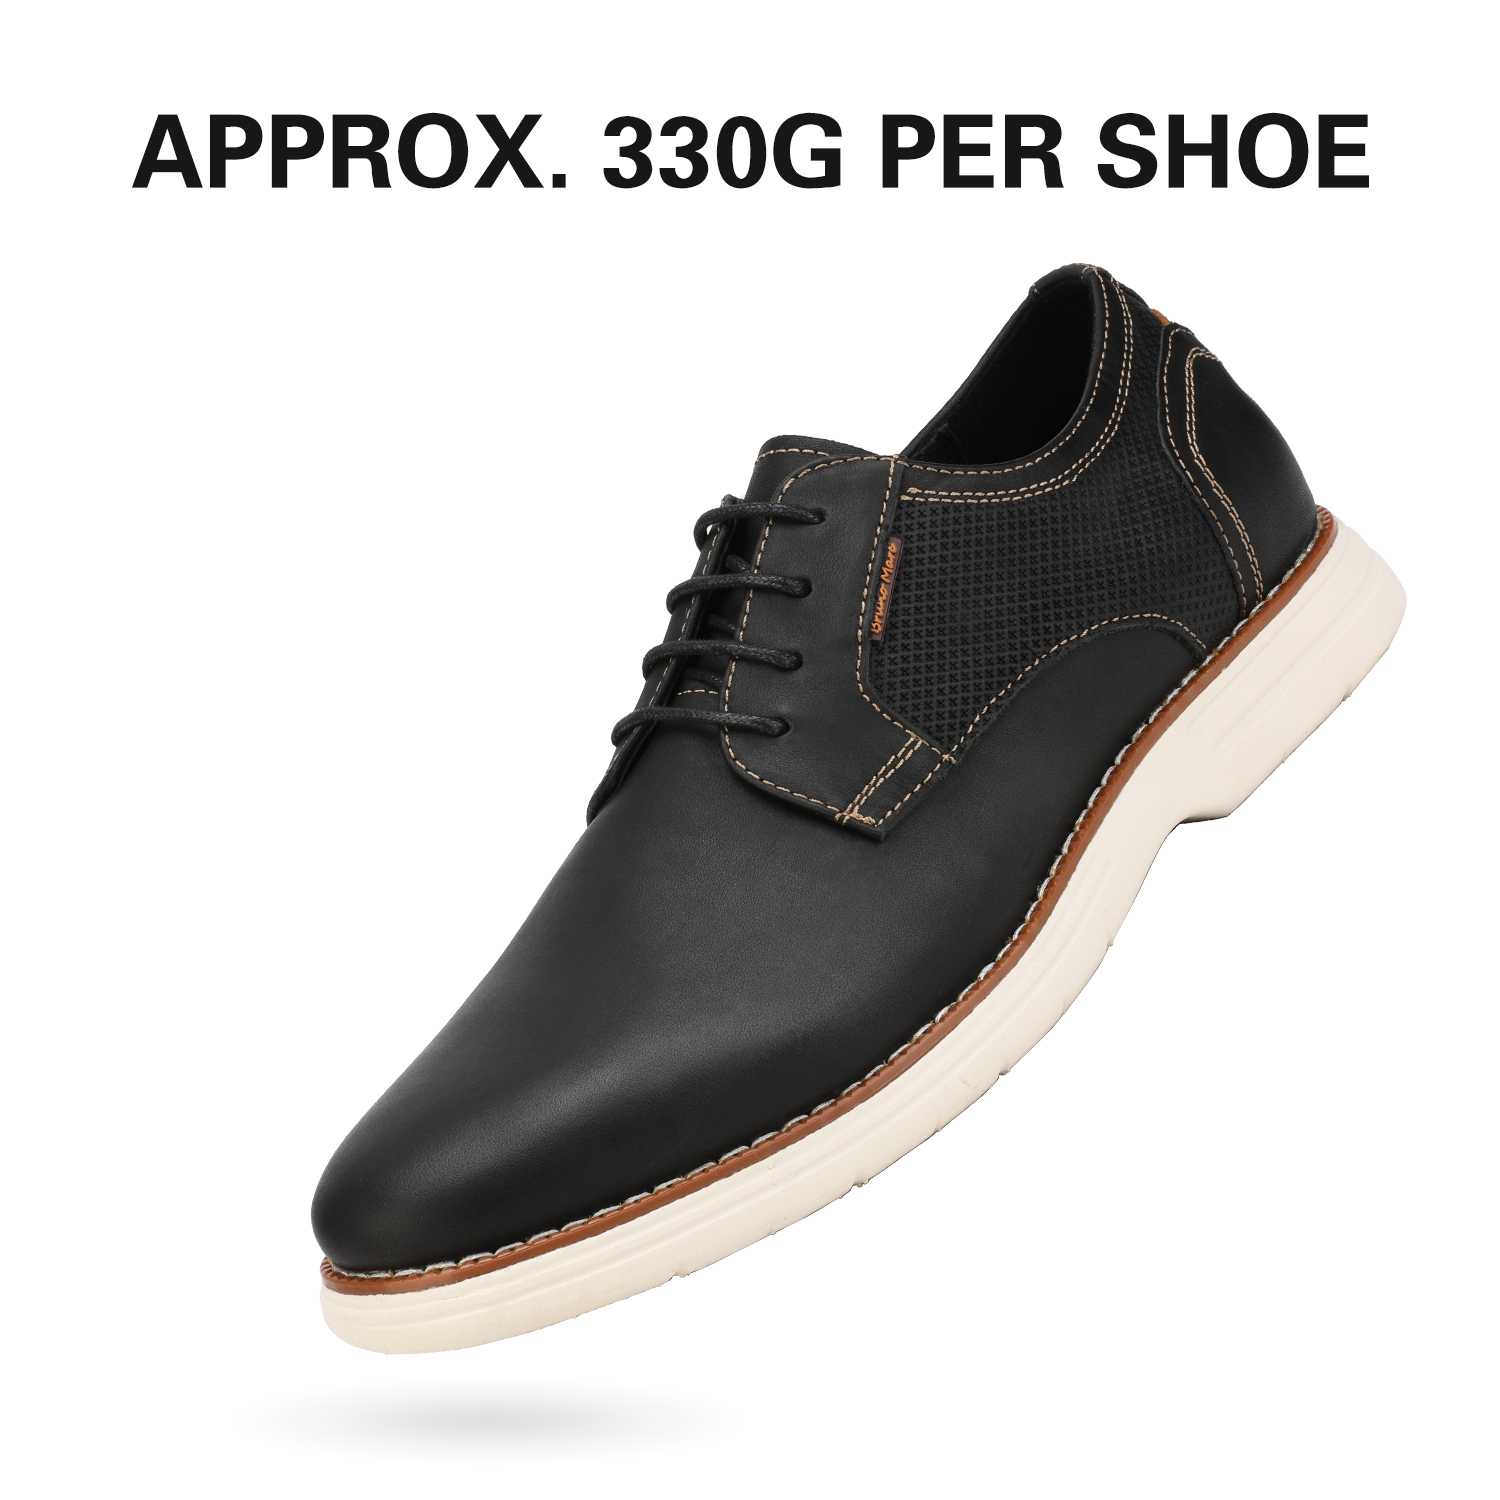 Mens-Fashion-Genuine-Leather-Business-Dress-Sneakers-Casual-Lace-up-Oxford-Shoe thumbnail 8